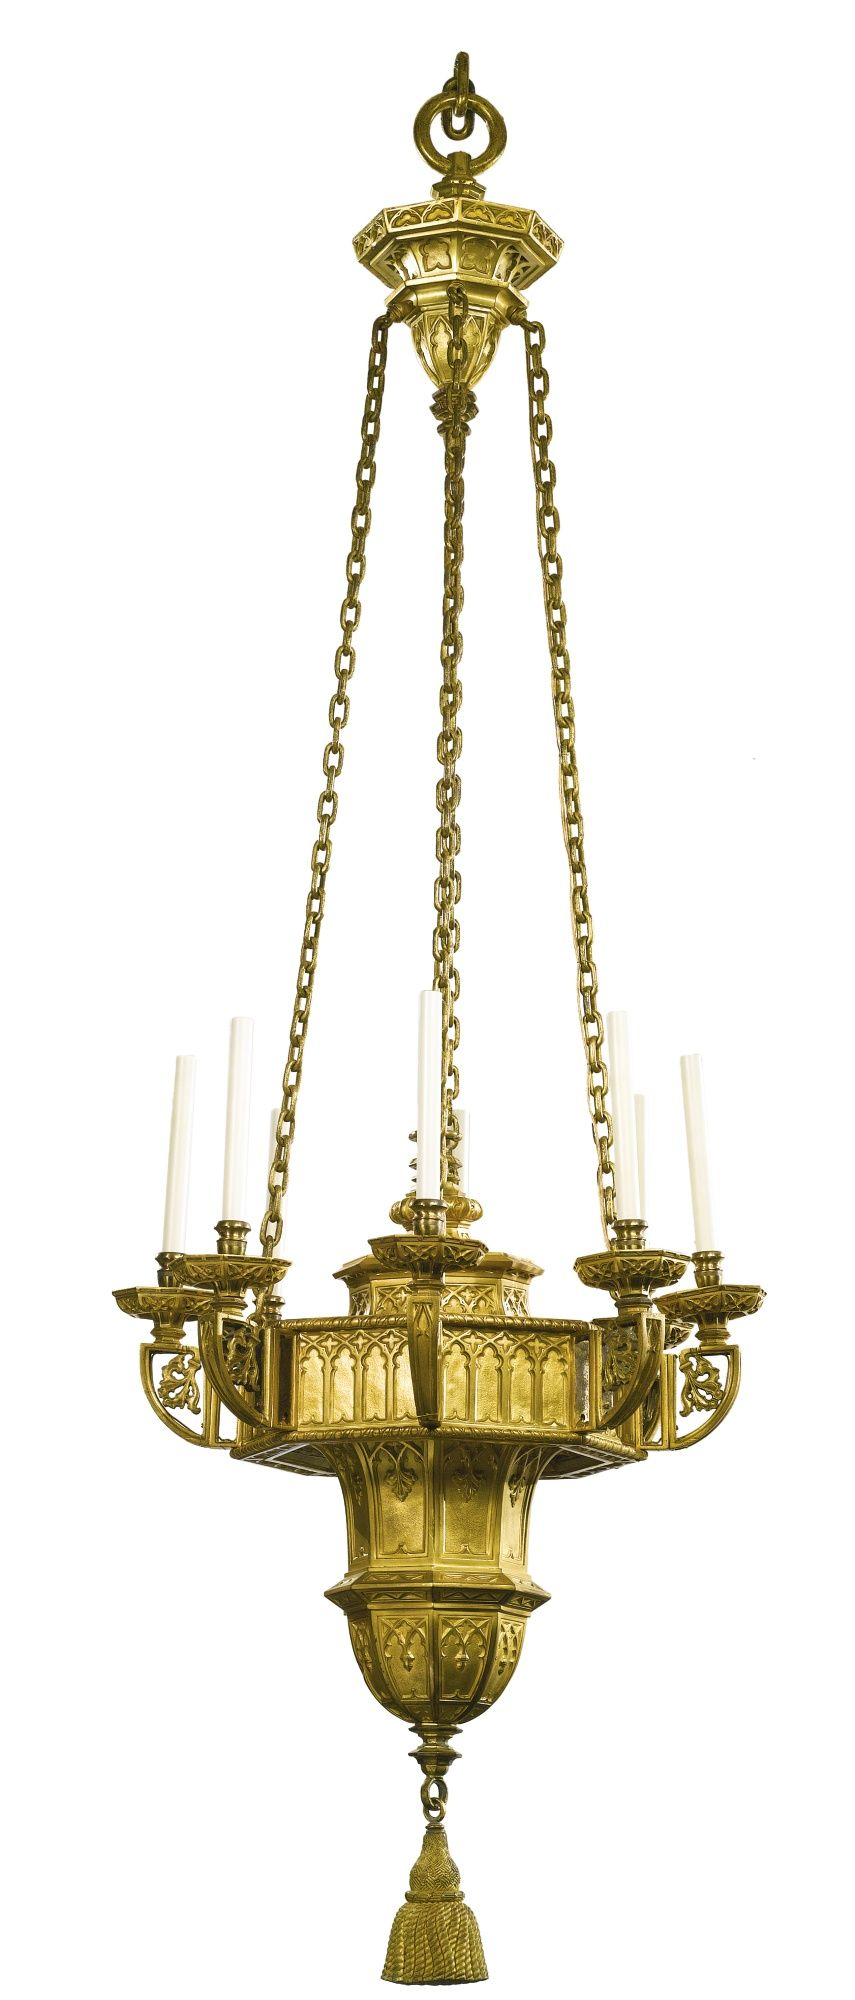 Attributed to edward f caldwell co a large moorish style gilt metal eight light chandelier new york early 20th century